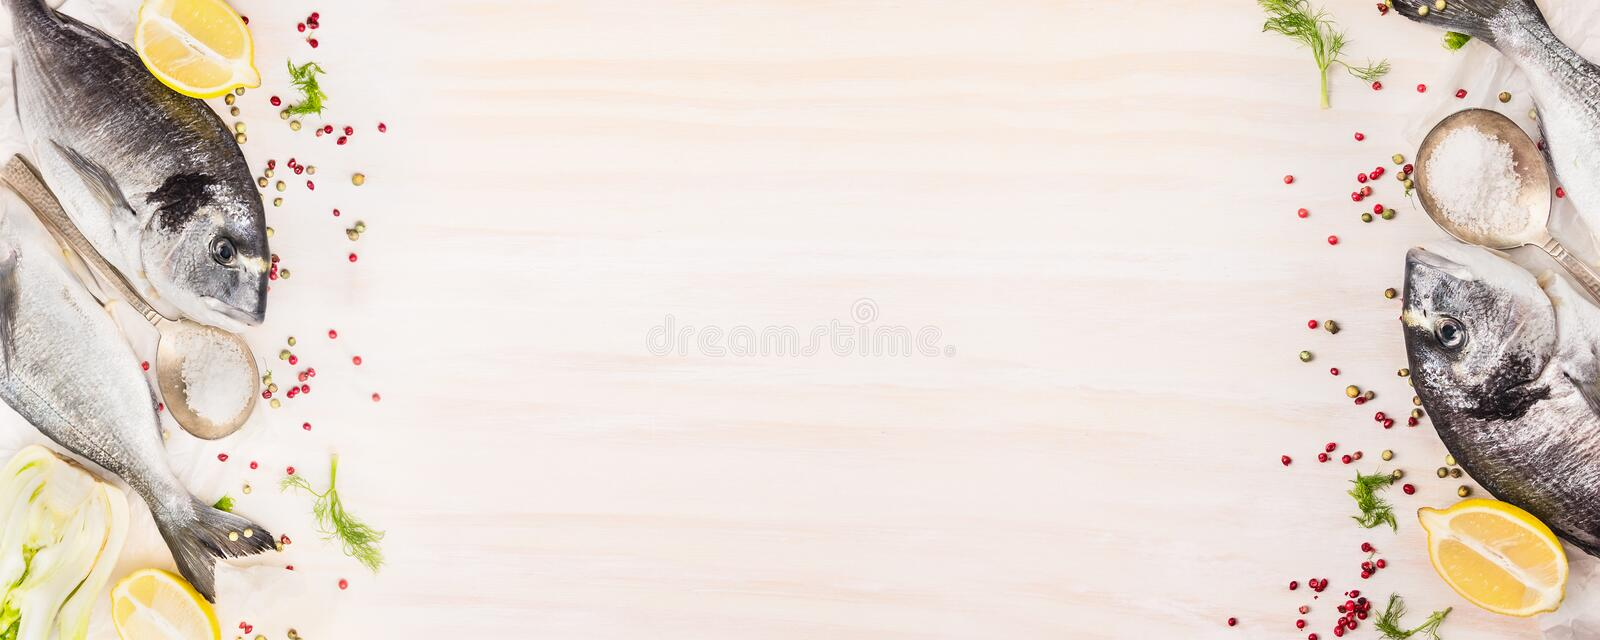 Raw dorado fish with lemon, herb and spices on white wooden background, top view, banner for website with cooking concept, royalty free stock photos